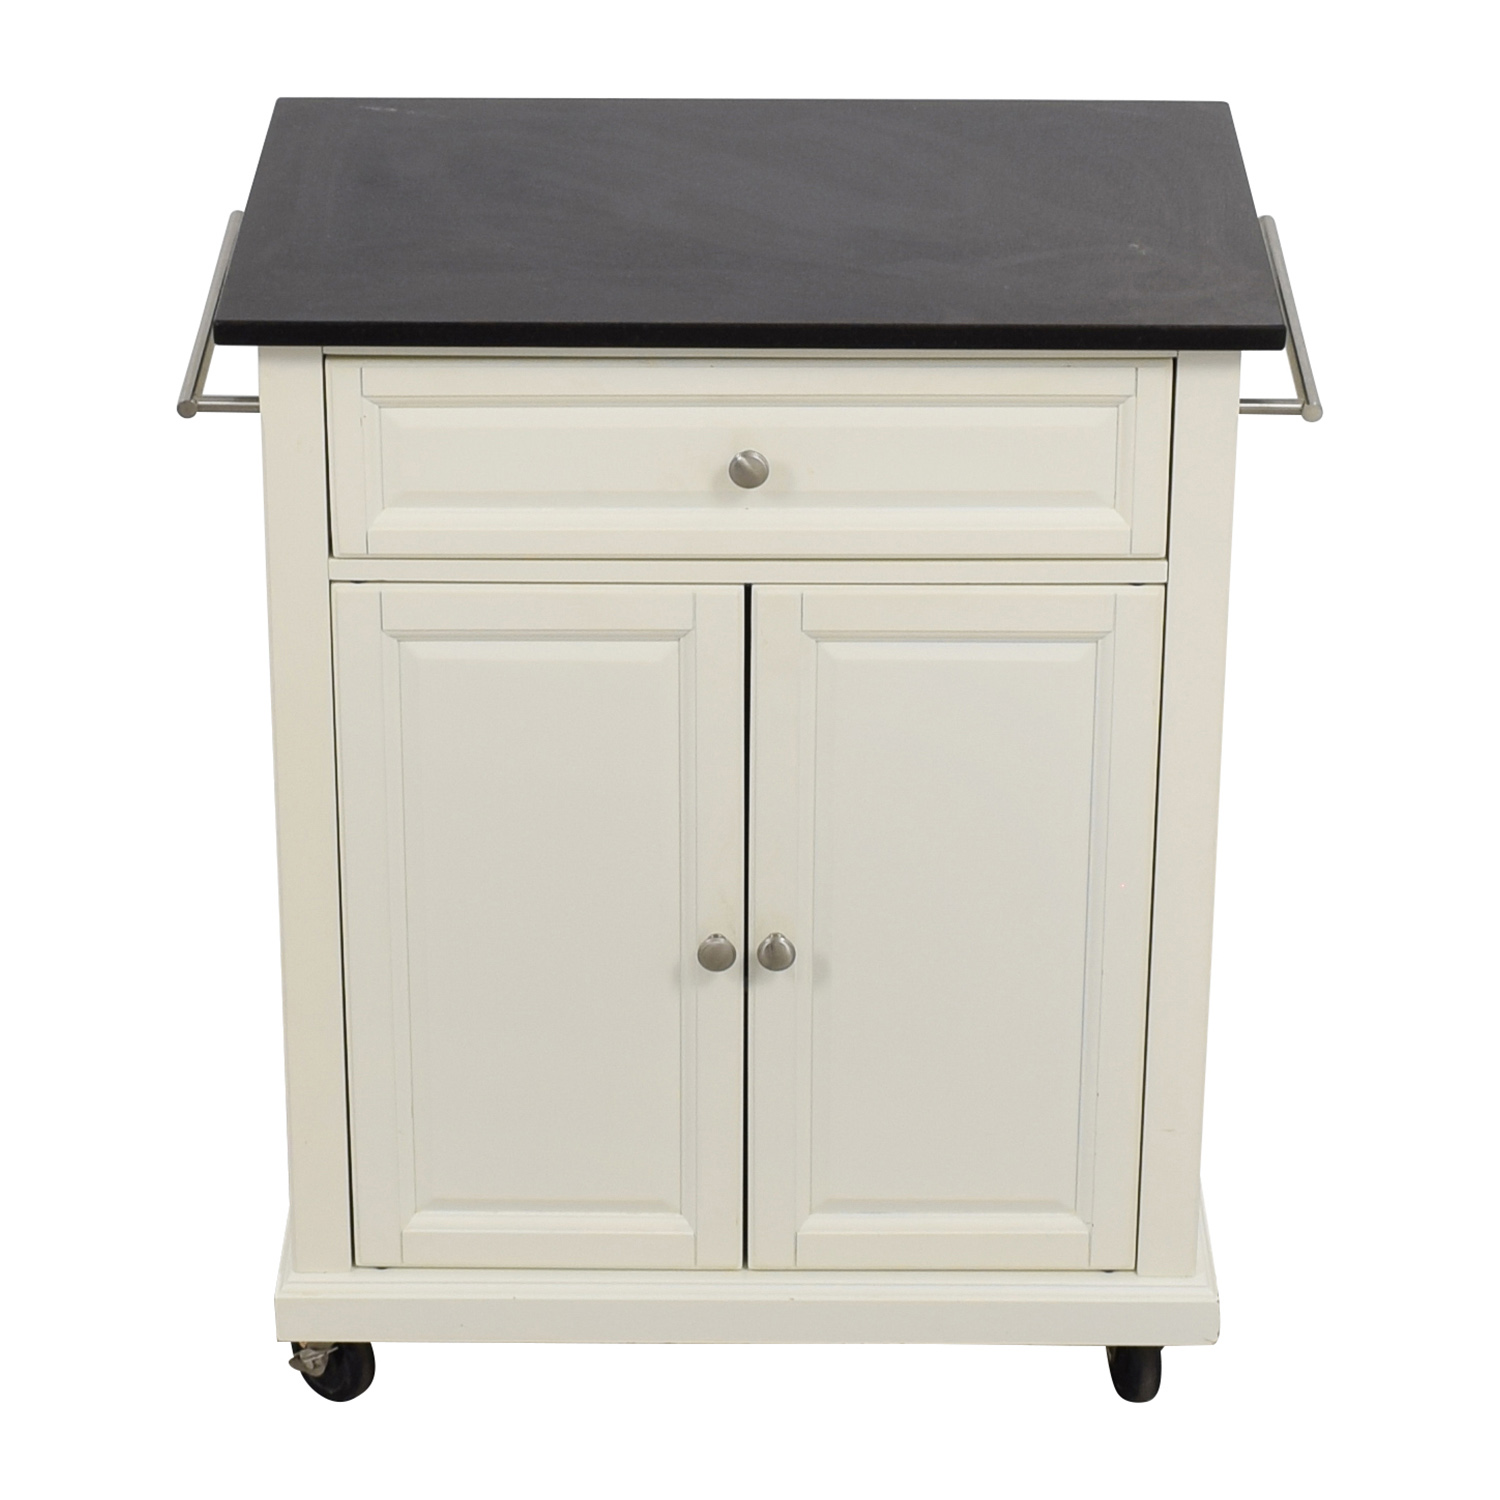 buy Crosley Furniture White Kitchen Island Counter on Castors Crosley Furniture Tables